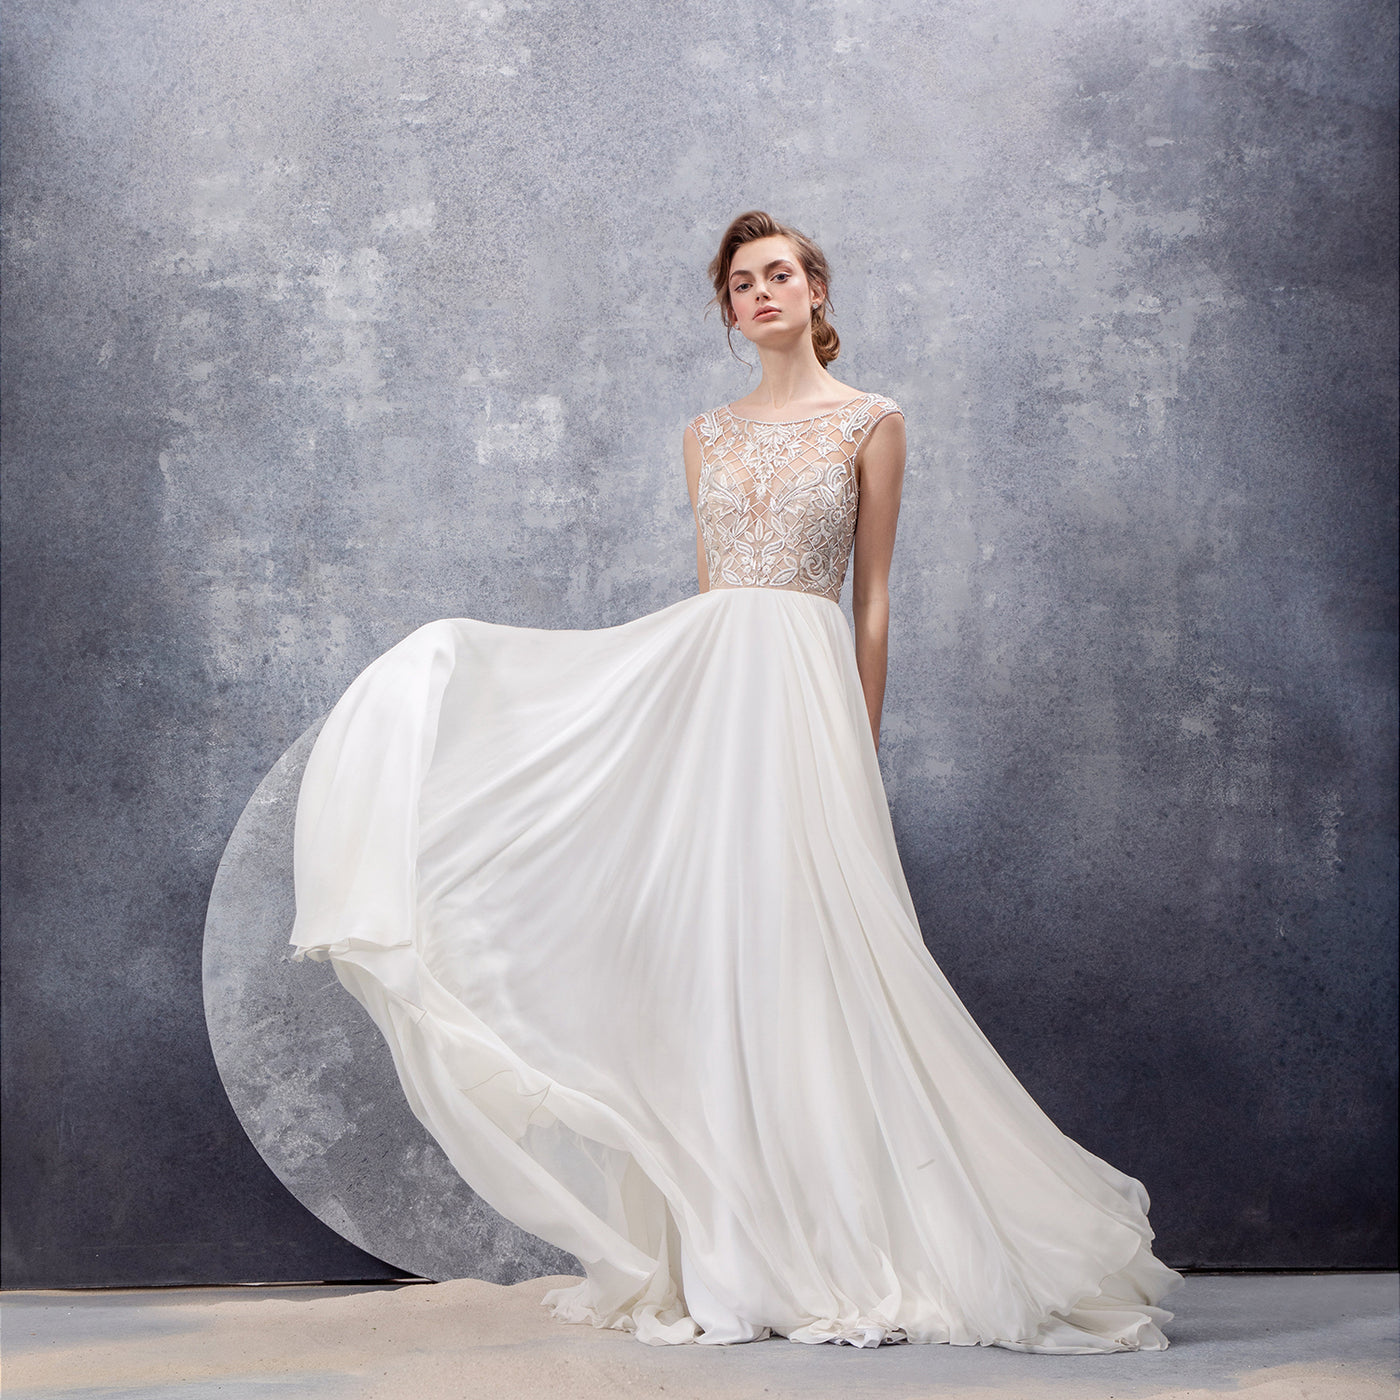 15ab4278997a7 Hayley Paige. Unexpected silhouettes, statement embellishments, and  intricate details come together to create wedding dresses ...